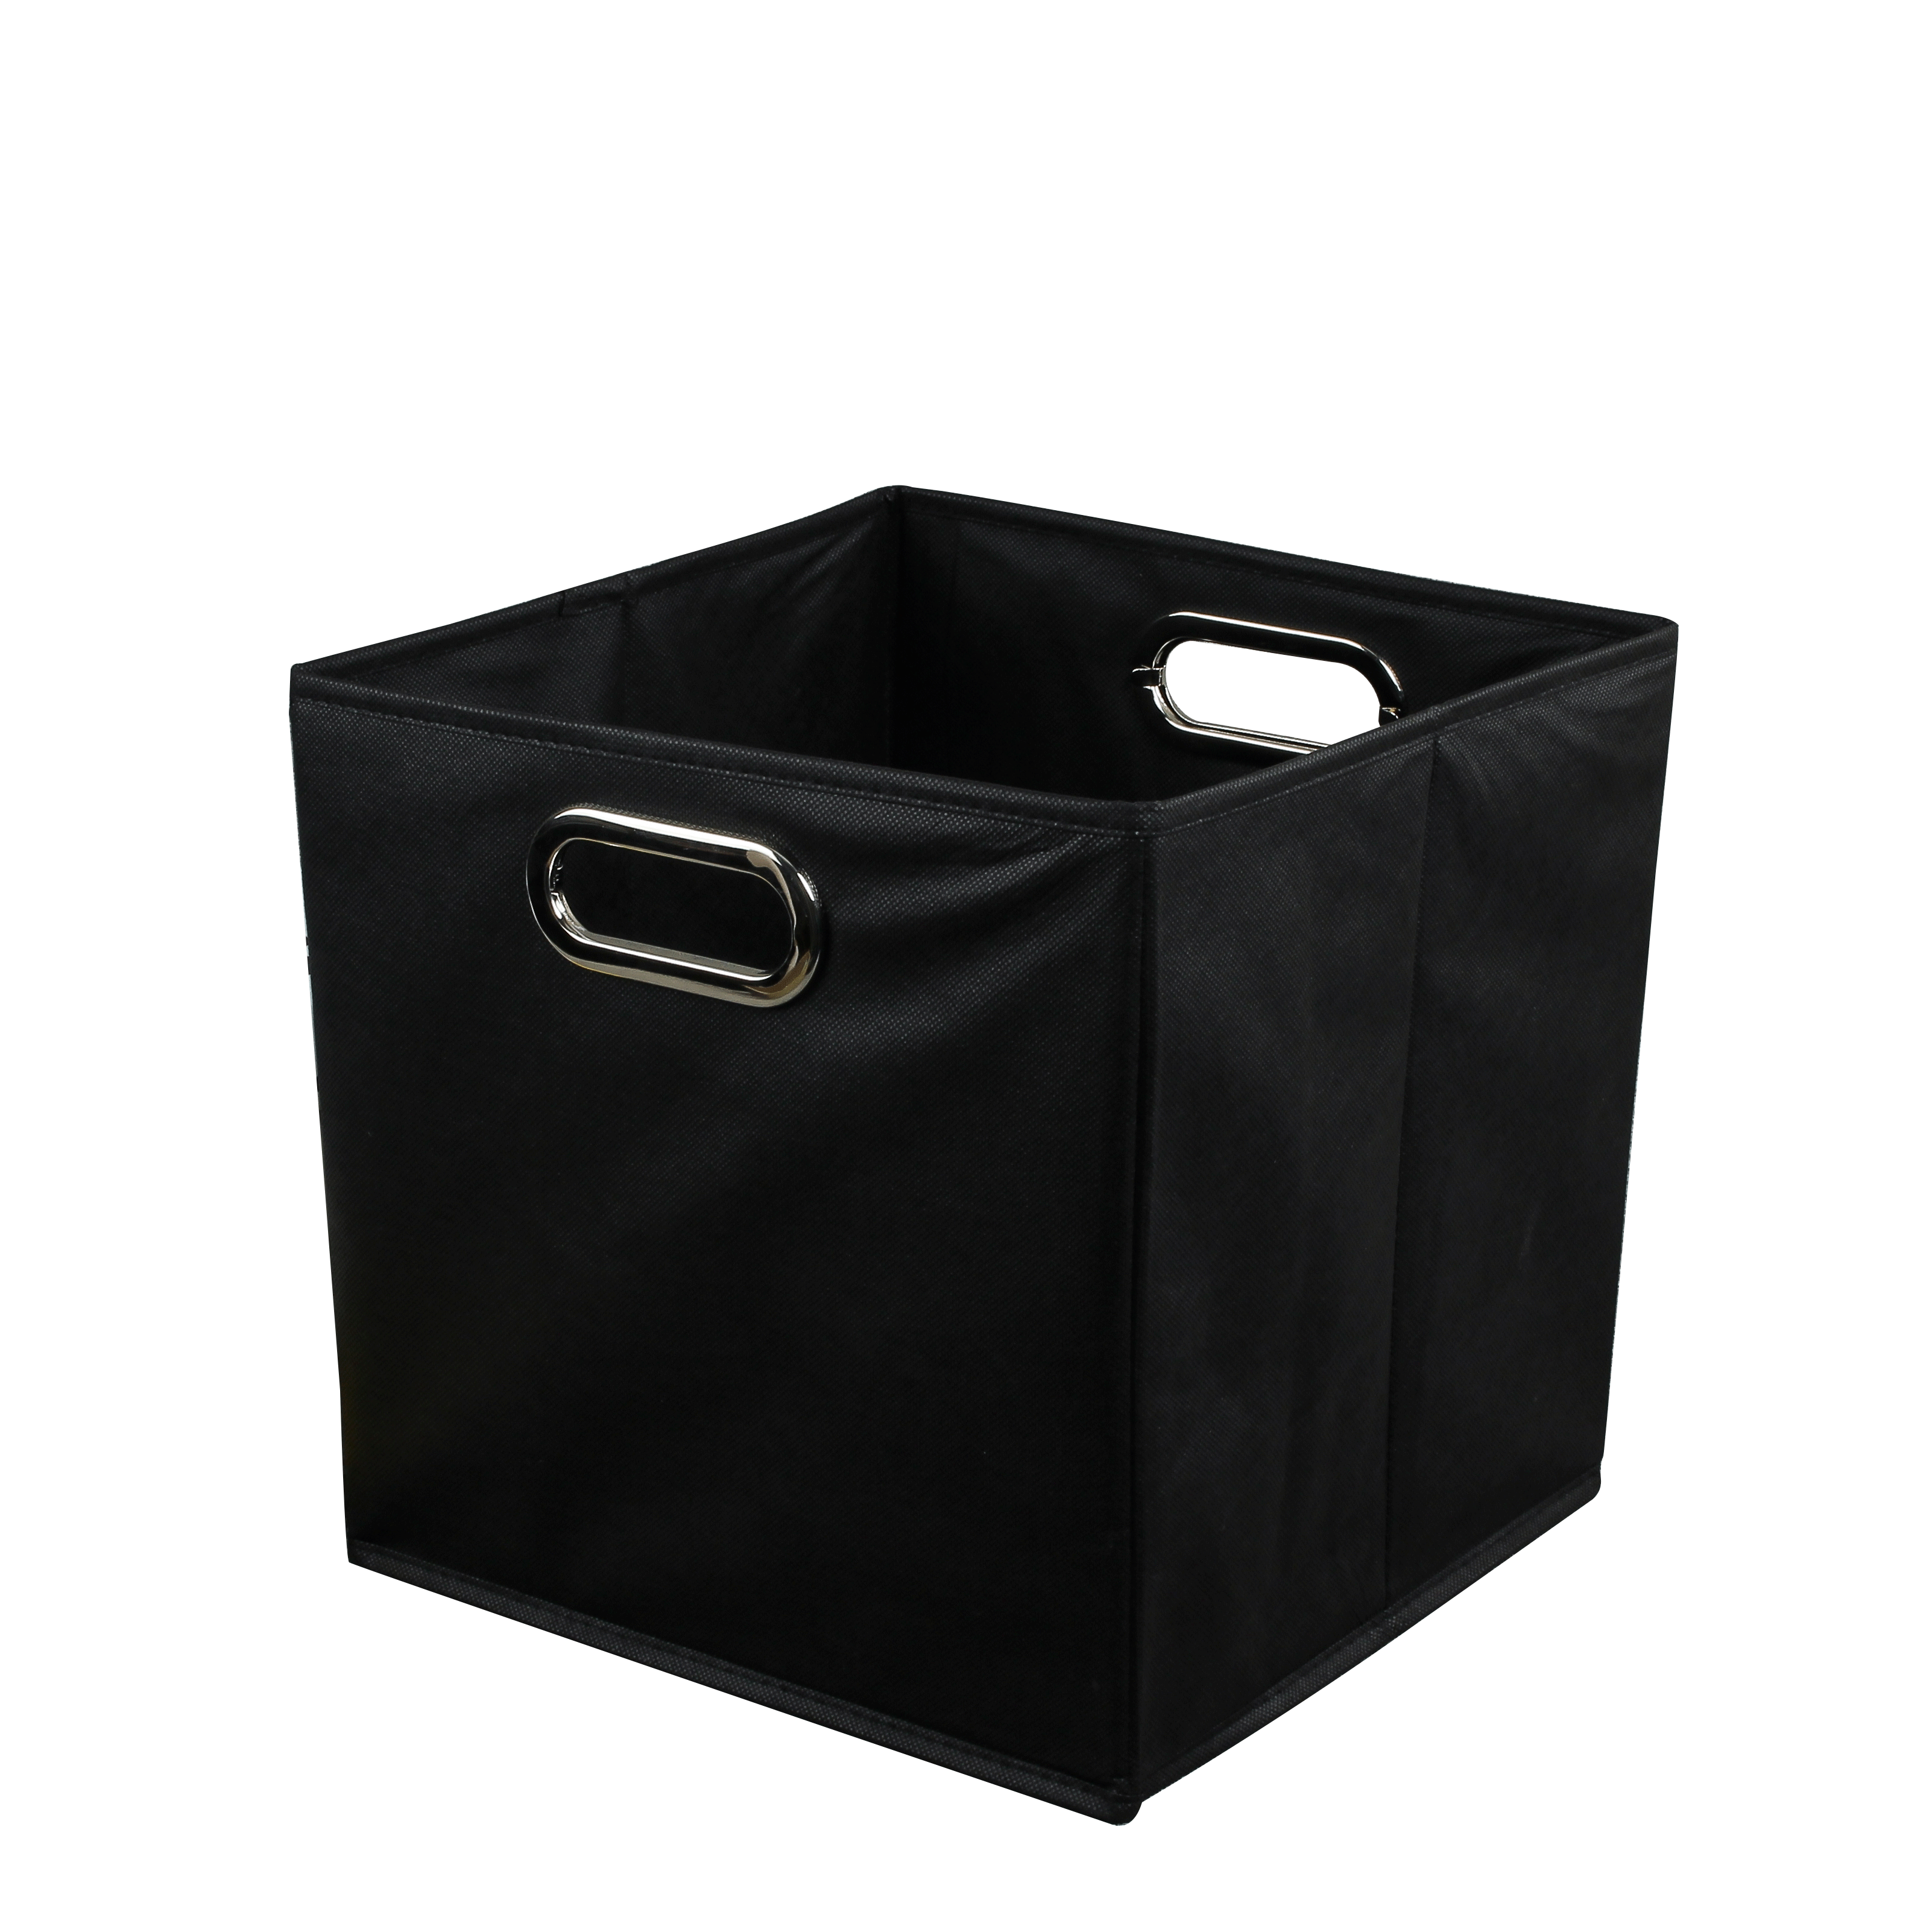 Factory customized large waterproof foldable oxford fabric cover cloth storage box with cardboard